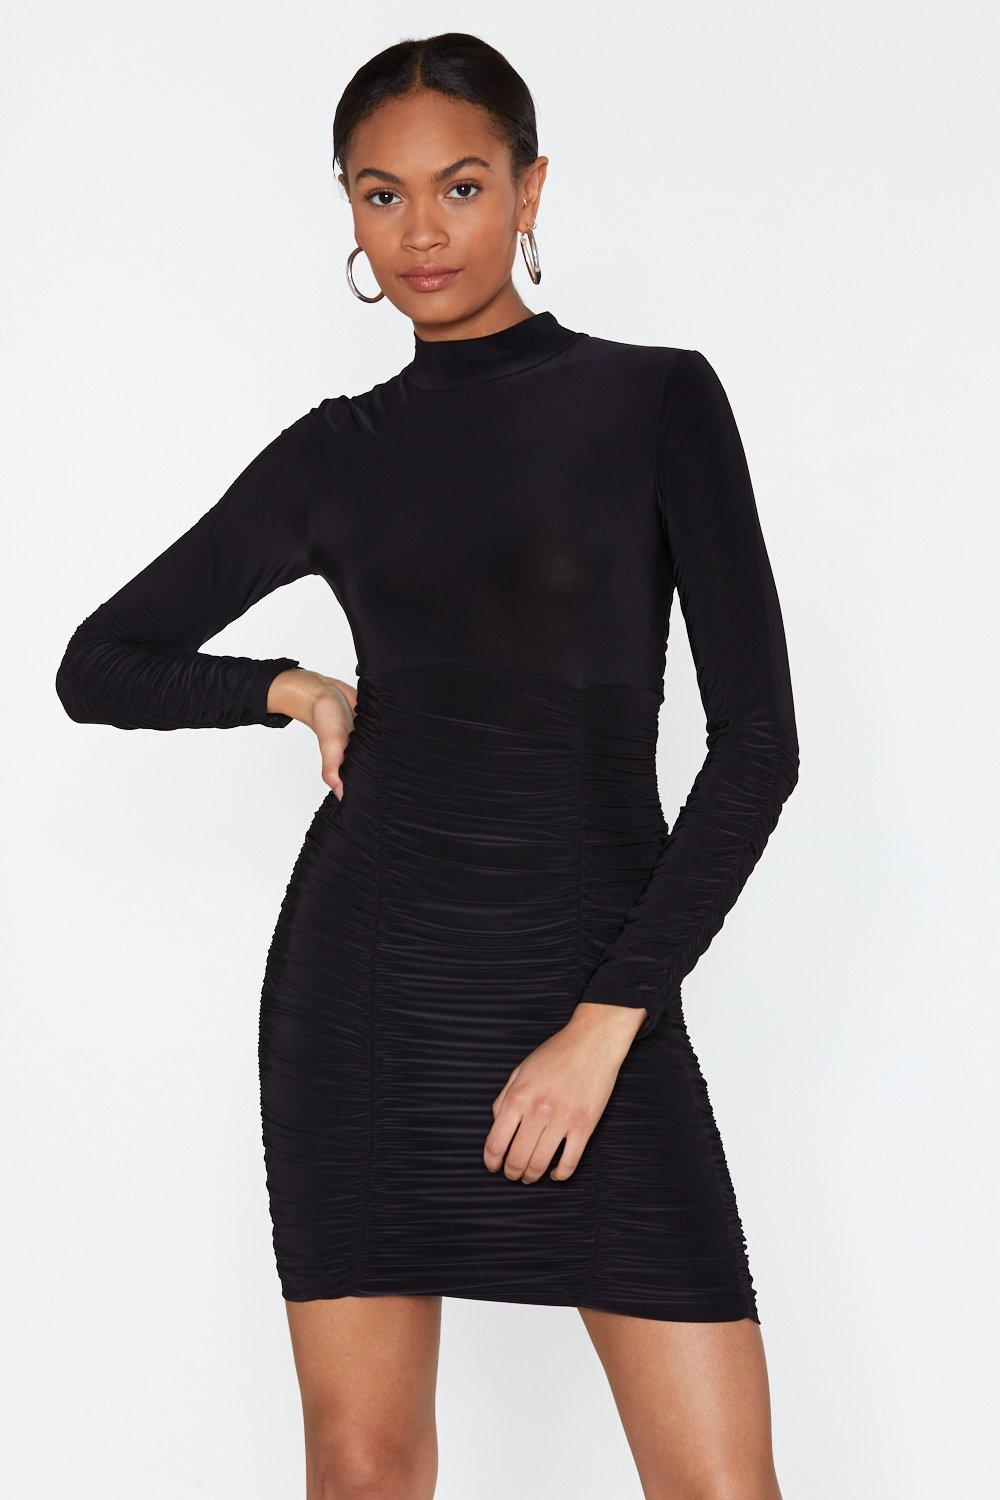 ca89e58d3ec5 Slinky Ruched Bottom Mini Dress | Shop Clothes at Nasty Gal!